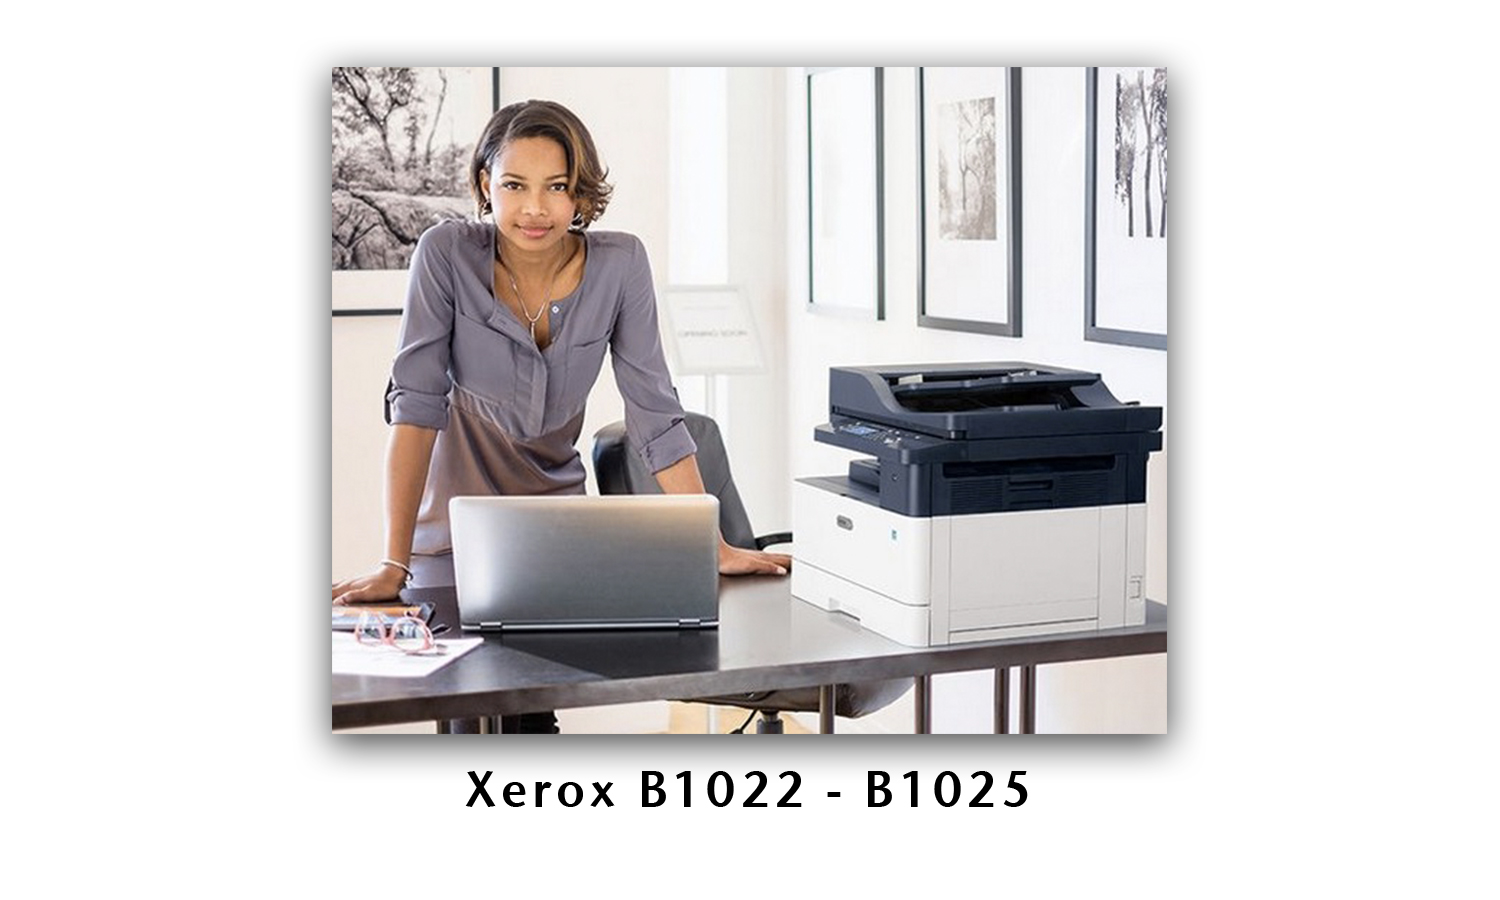 xexox-B1022-B1025-xerox-paris-docline-solutions